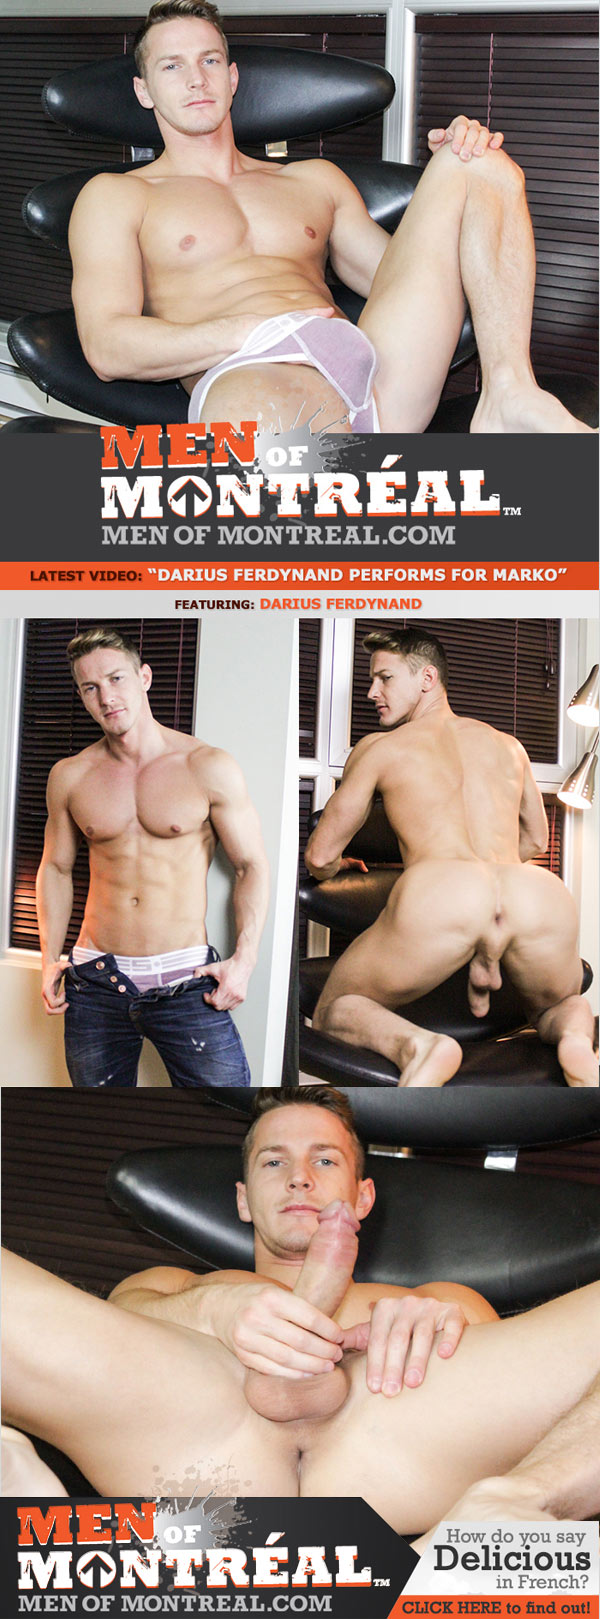 Darius Ferdynand Performs For Marko Lebeau at MenOfMontreal